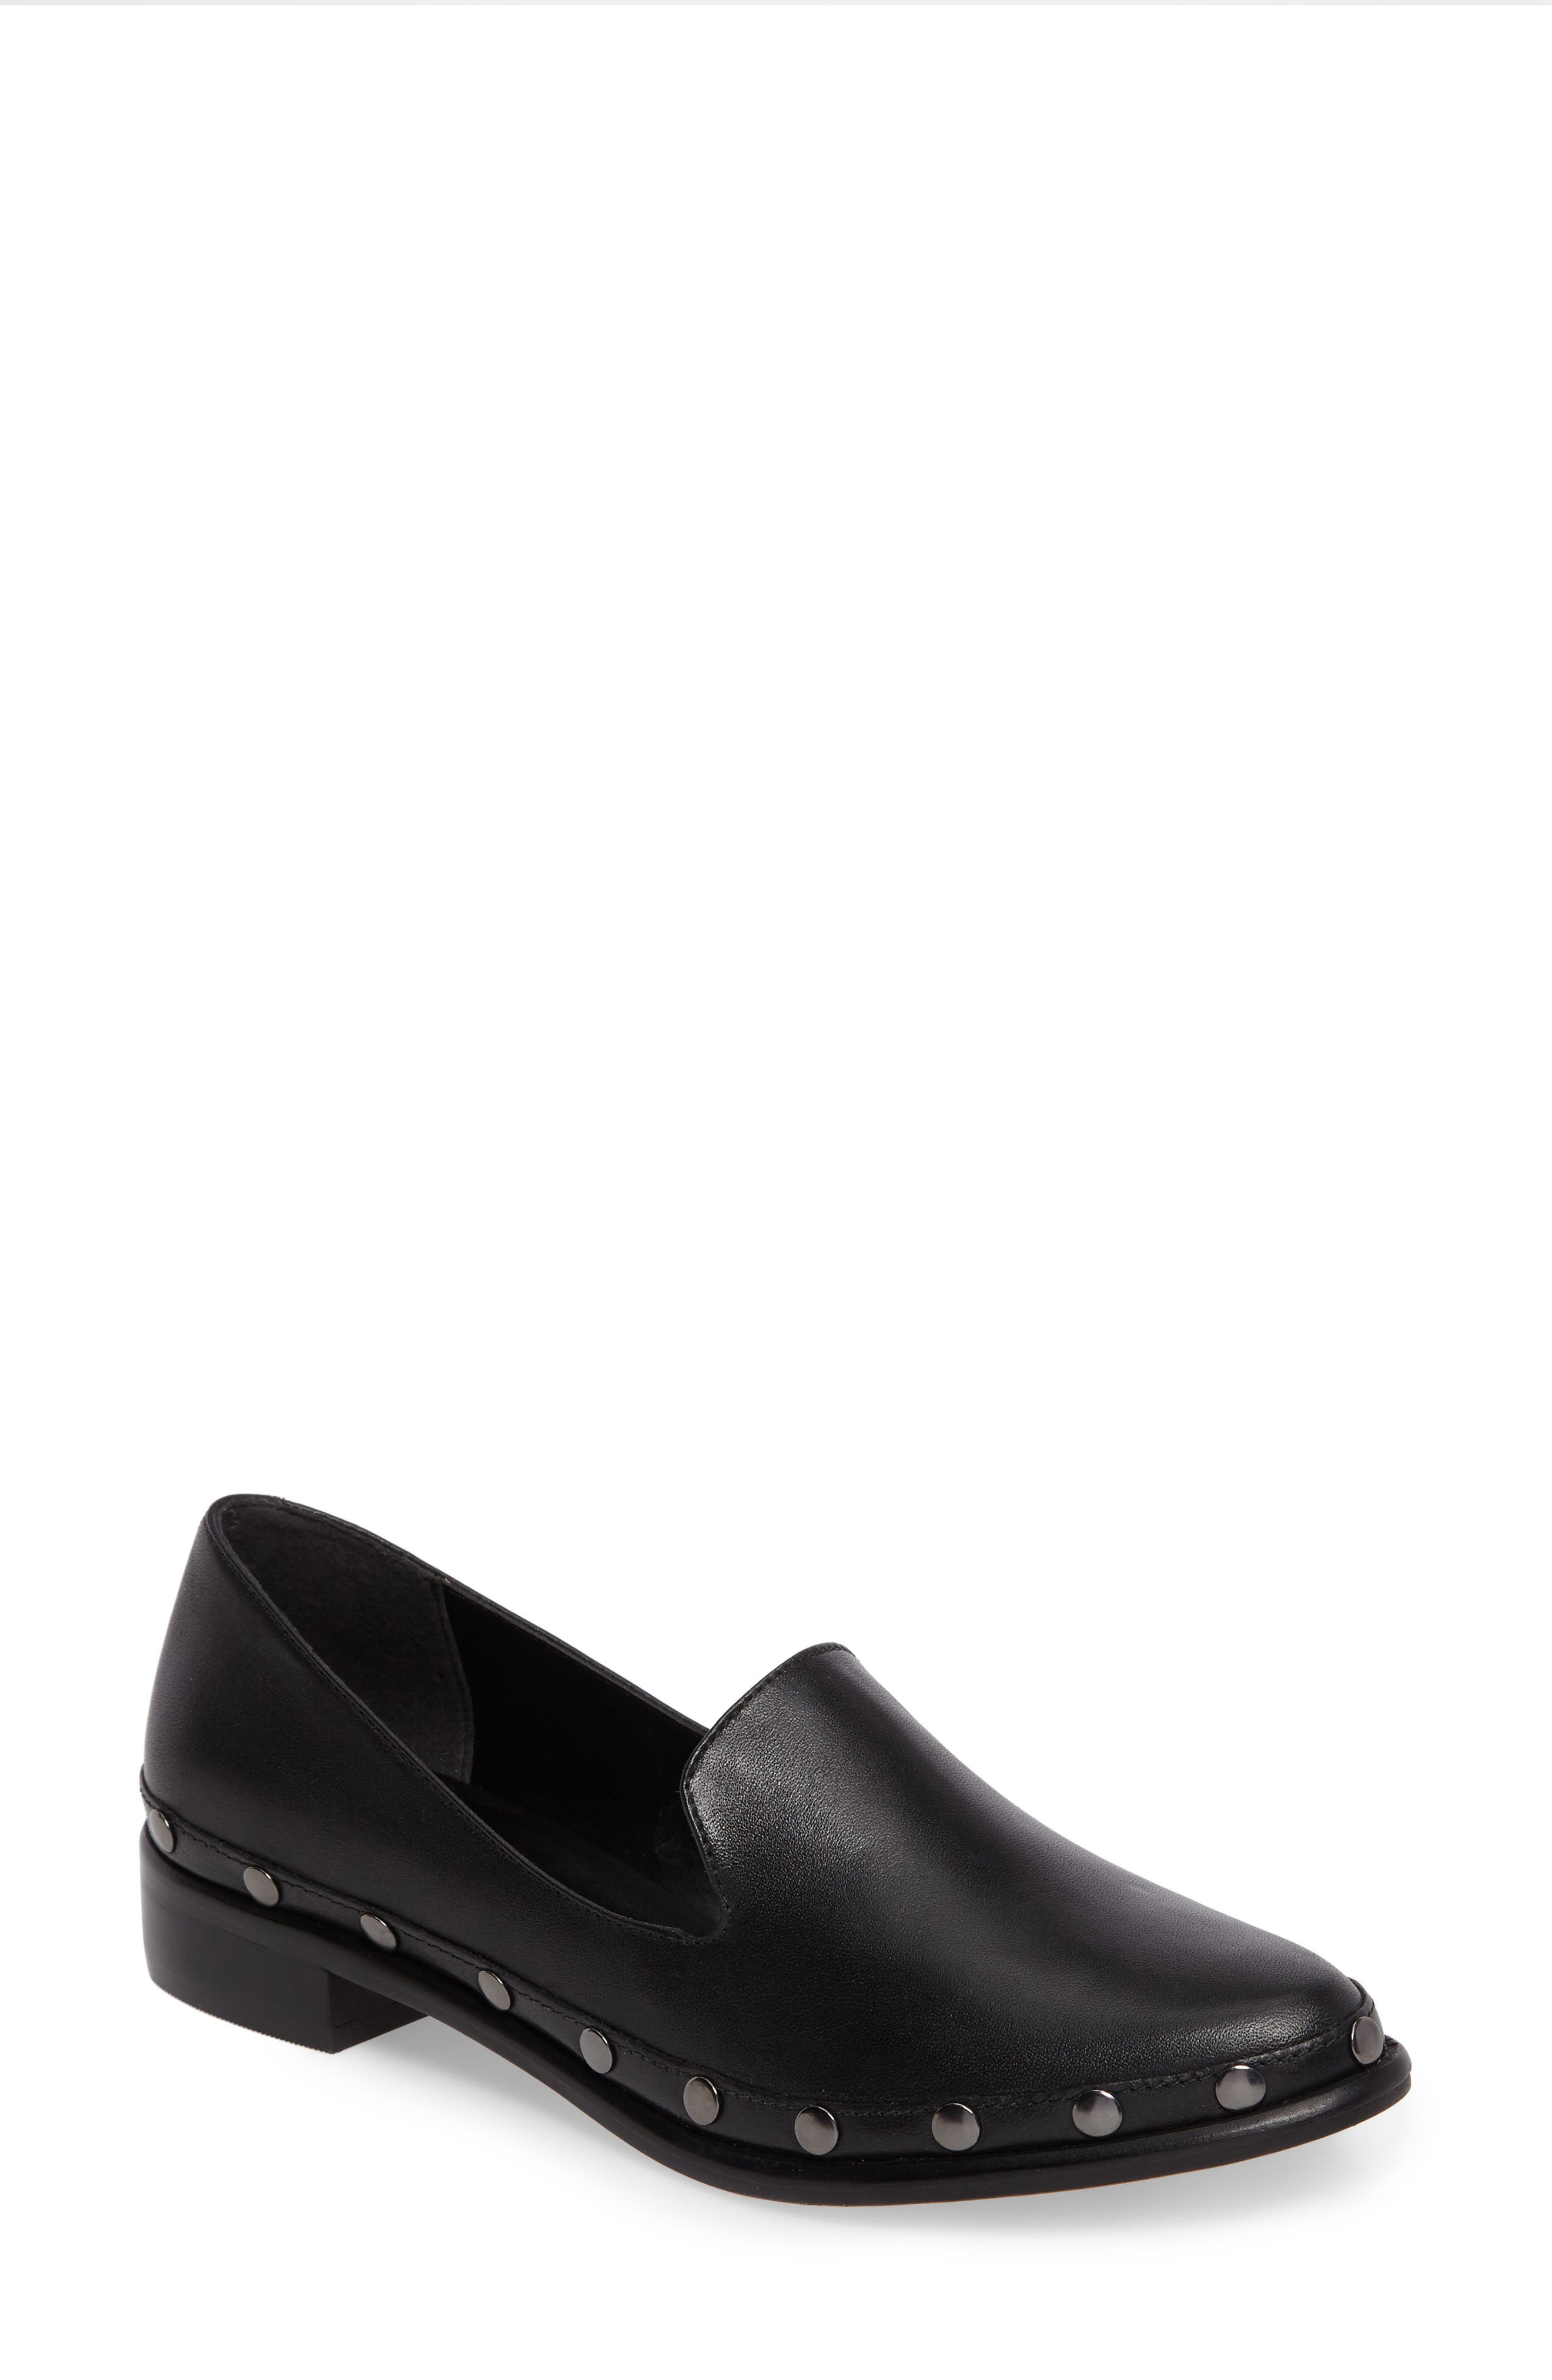 M4D3 Oceania Loafer,                         Main,                         color, Black Leather